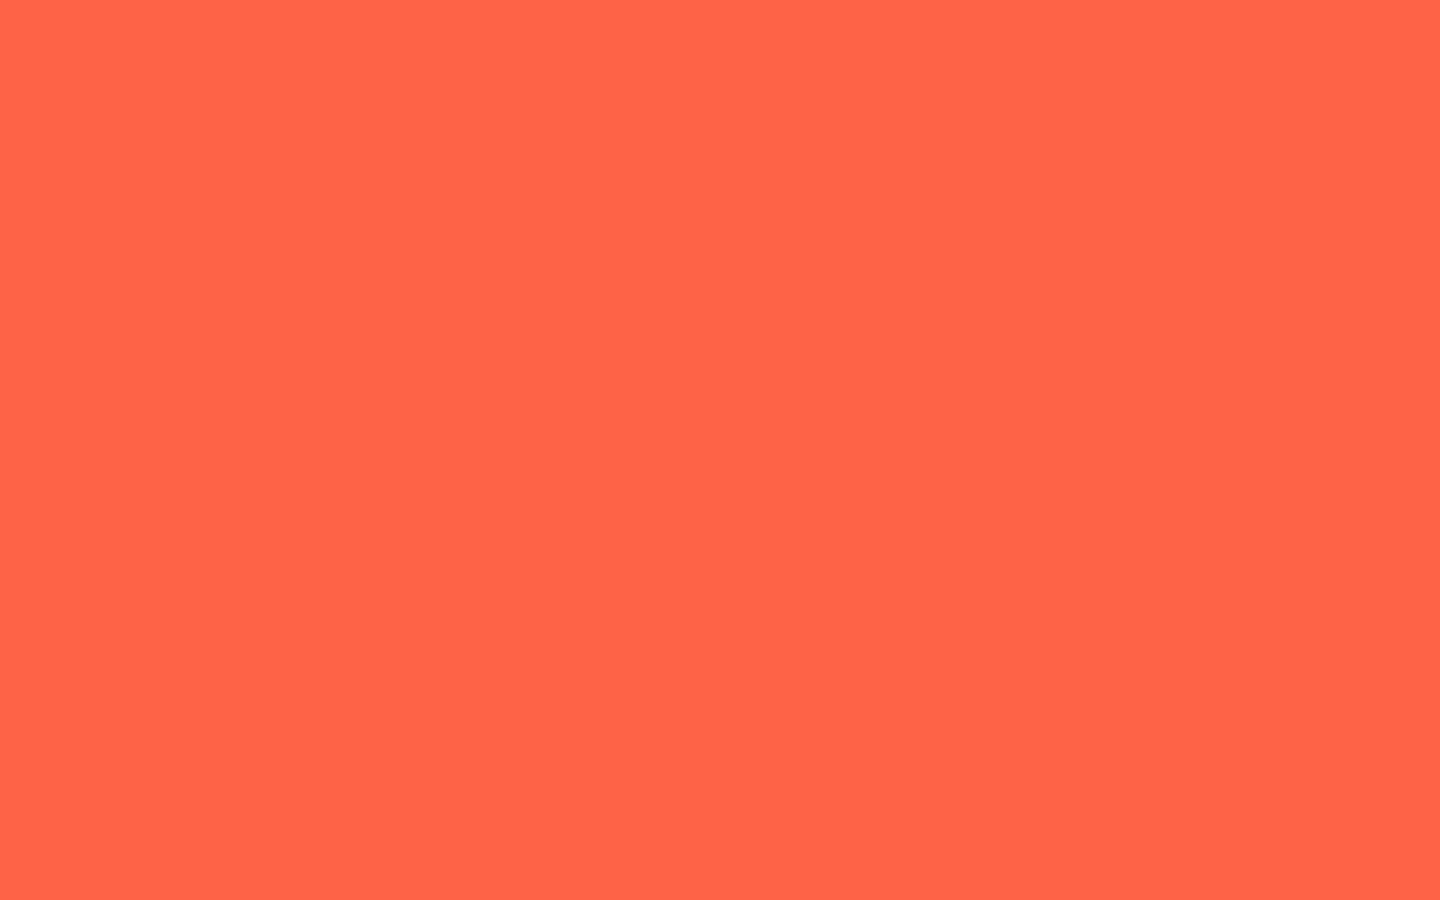 1440x900 Tomato Solid Color Background